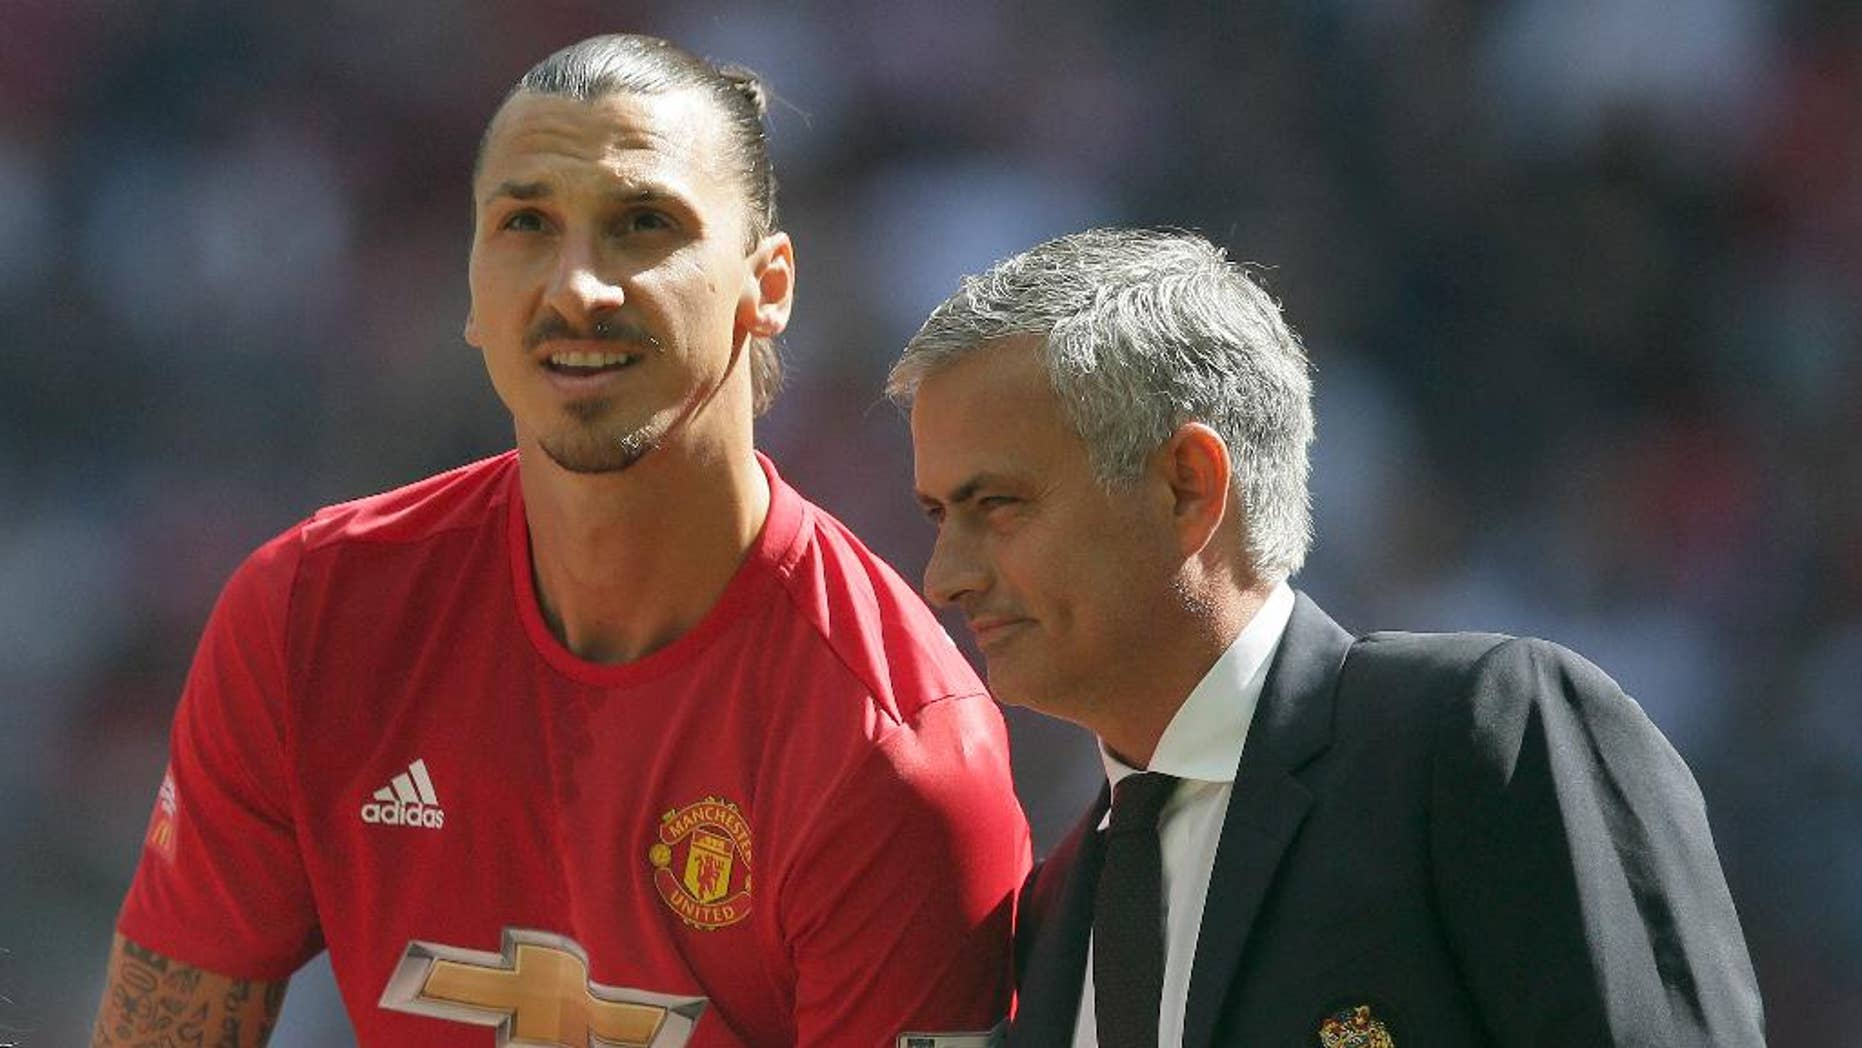 Manchester United manager Jose Mourinho, right, with Manchester United's Zlatan Ibrahimovic during the Community Shield soccer match between Leicester and Manchester United at Wembley stadium in London, Saturday April 9, 2016. (AP Photo/Tim Ireland)